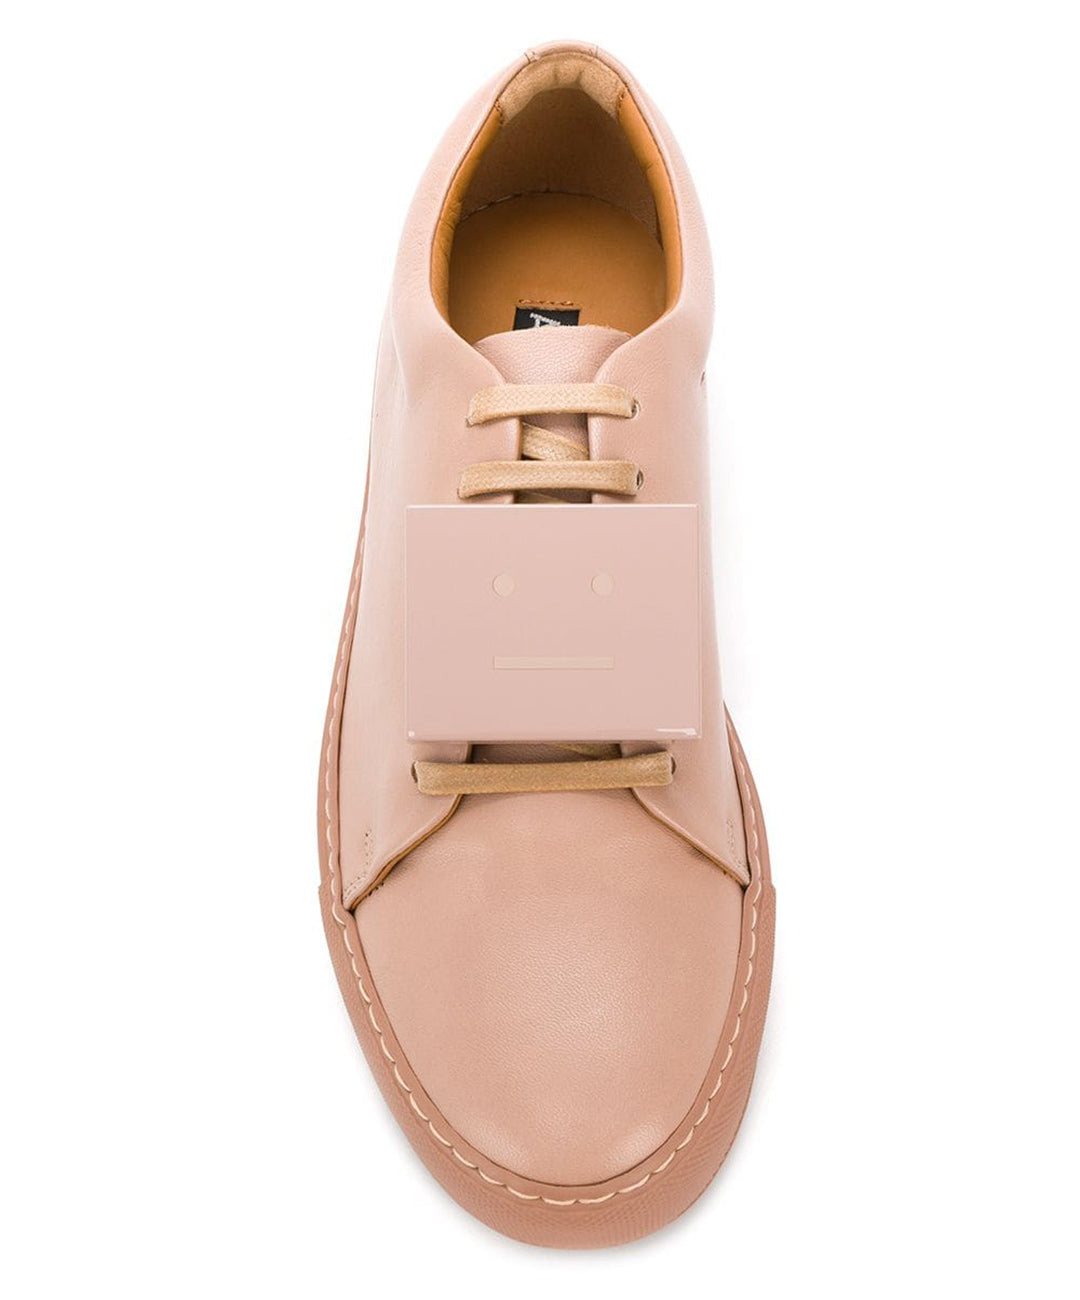 The Face by Acne Studios Shoes exclusively at Camargue in Brisbane